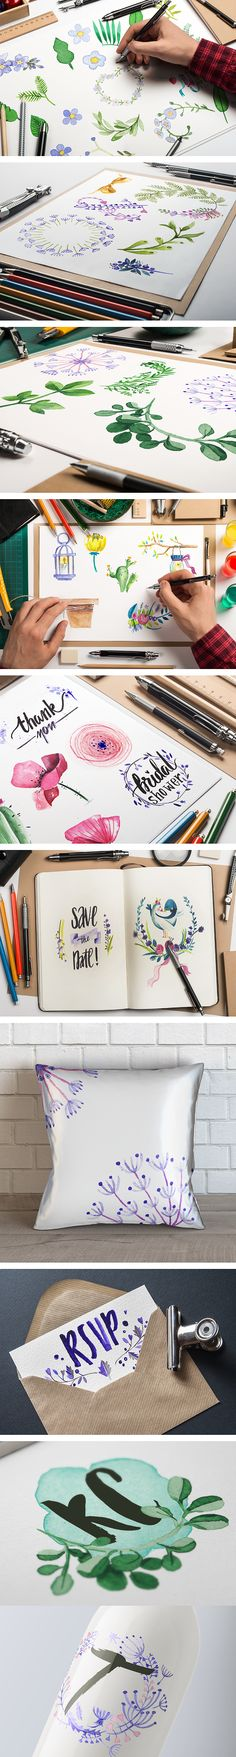 Brush up on the watercolor design trend with this beautiful collection! You will receive 540+ stunning elements, including watercolor flowers, birds, frames, watercolor wallpaper and so much more. All these hand paintedresources are perfect for almost every project you can think of: from stationery and packaging to merchandise, websites, digital presentations and everything in between! You can use them to give your work an artistic touch or to wow a client who is looking for something out…